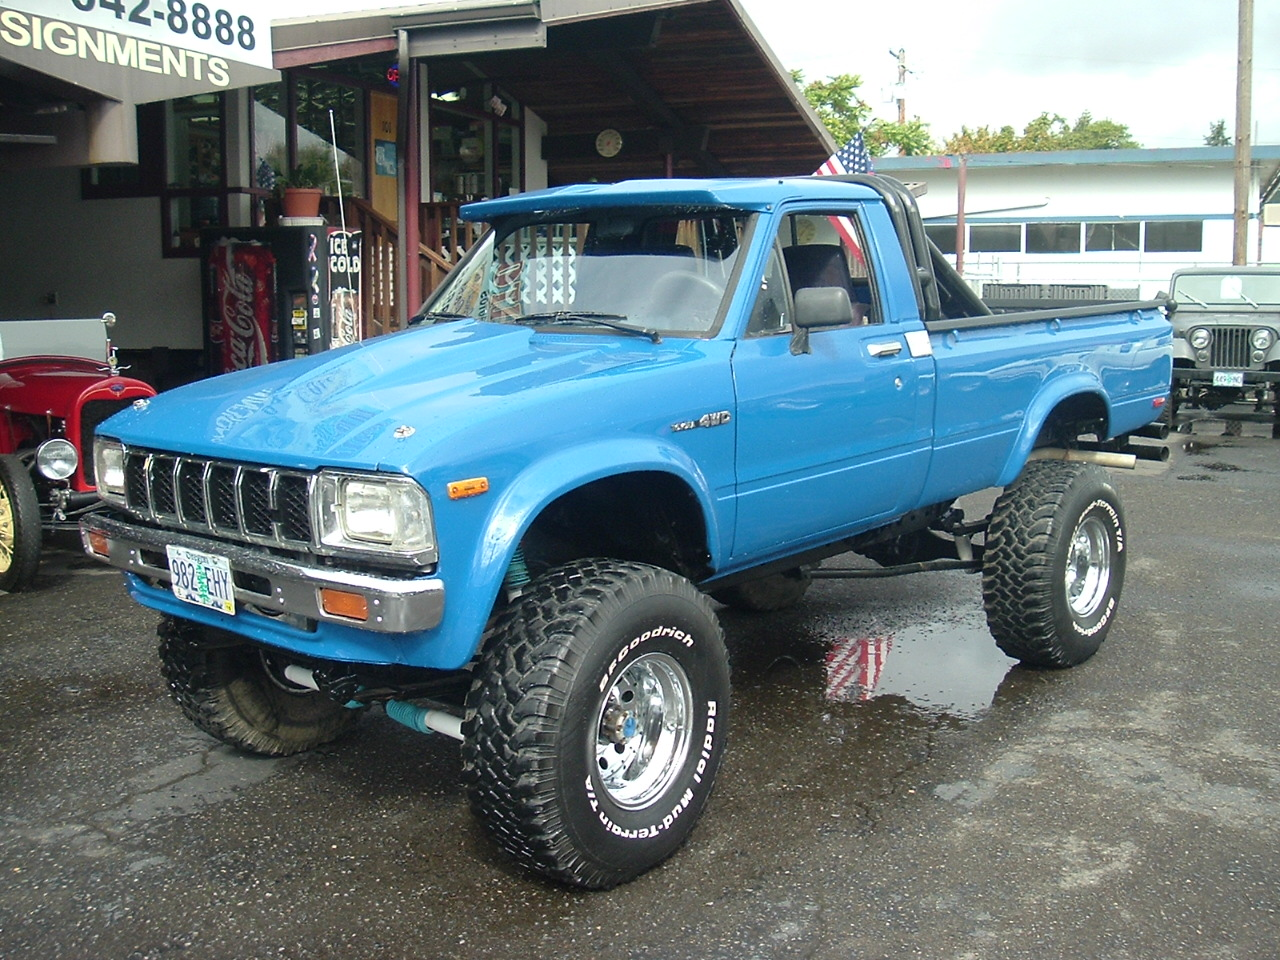 1980 toyota pickup 4x4 long bed 383 stroker v 8 turbo 350 auto transmission stock transfer case and axles power steering power brakes